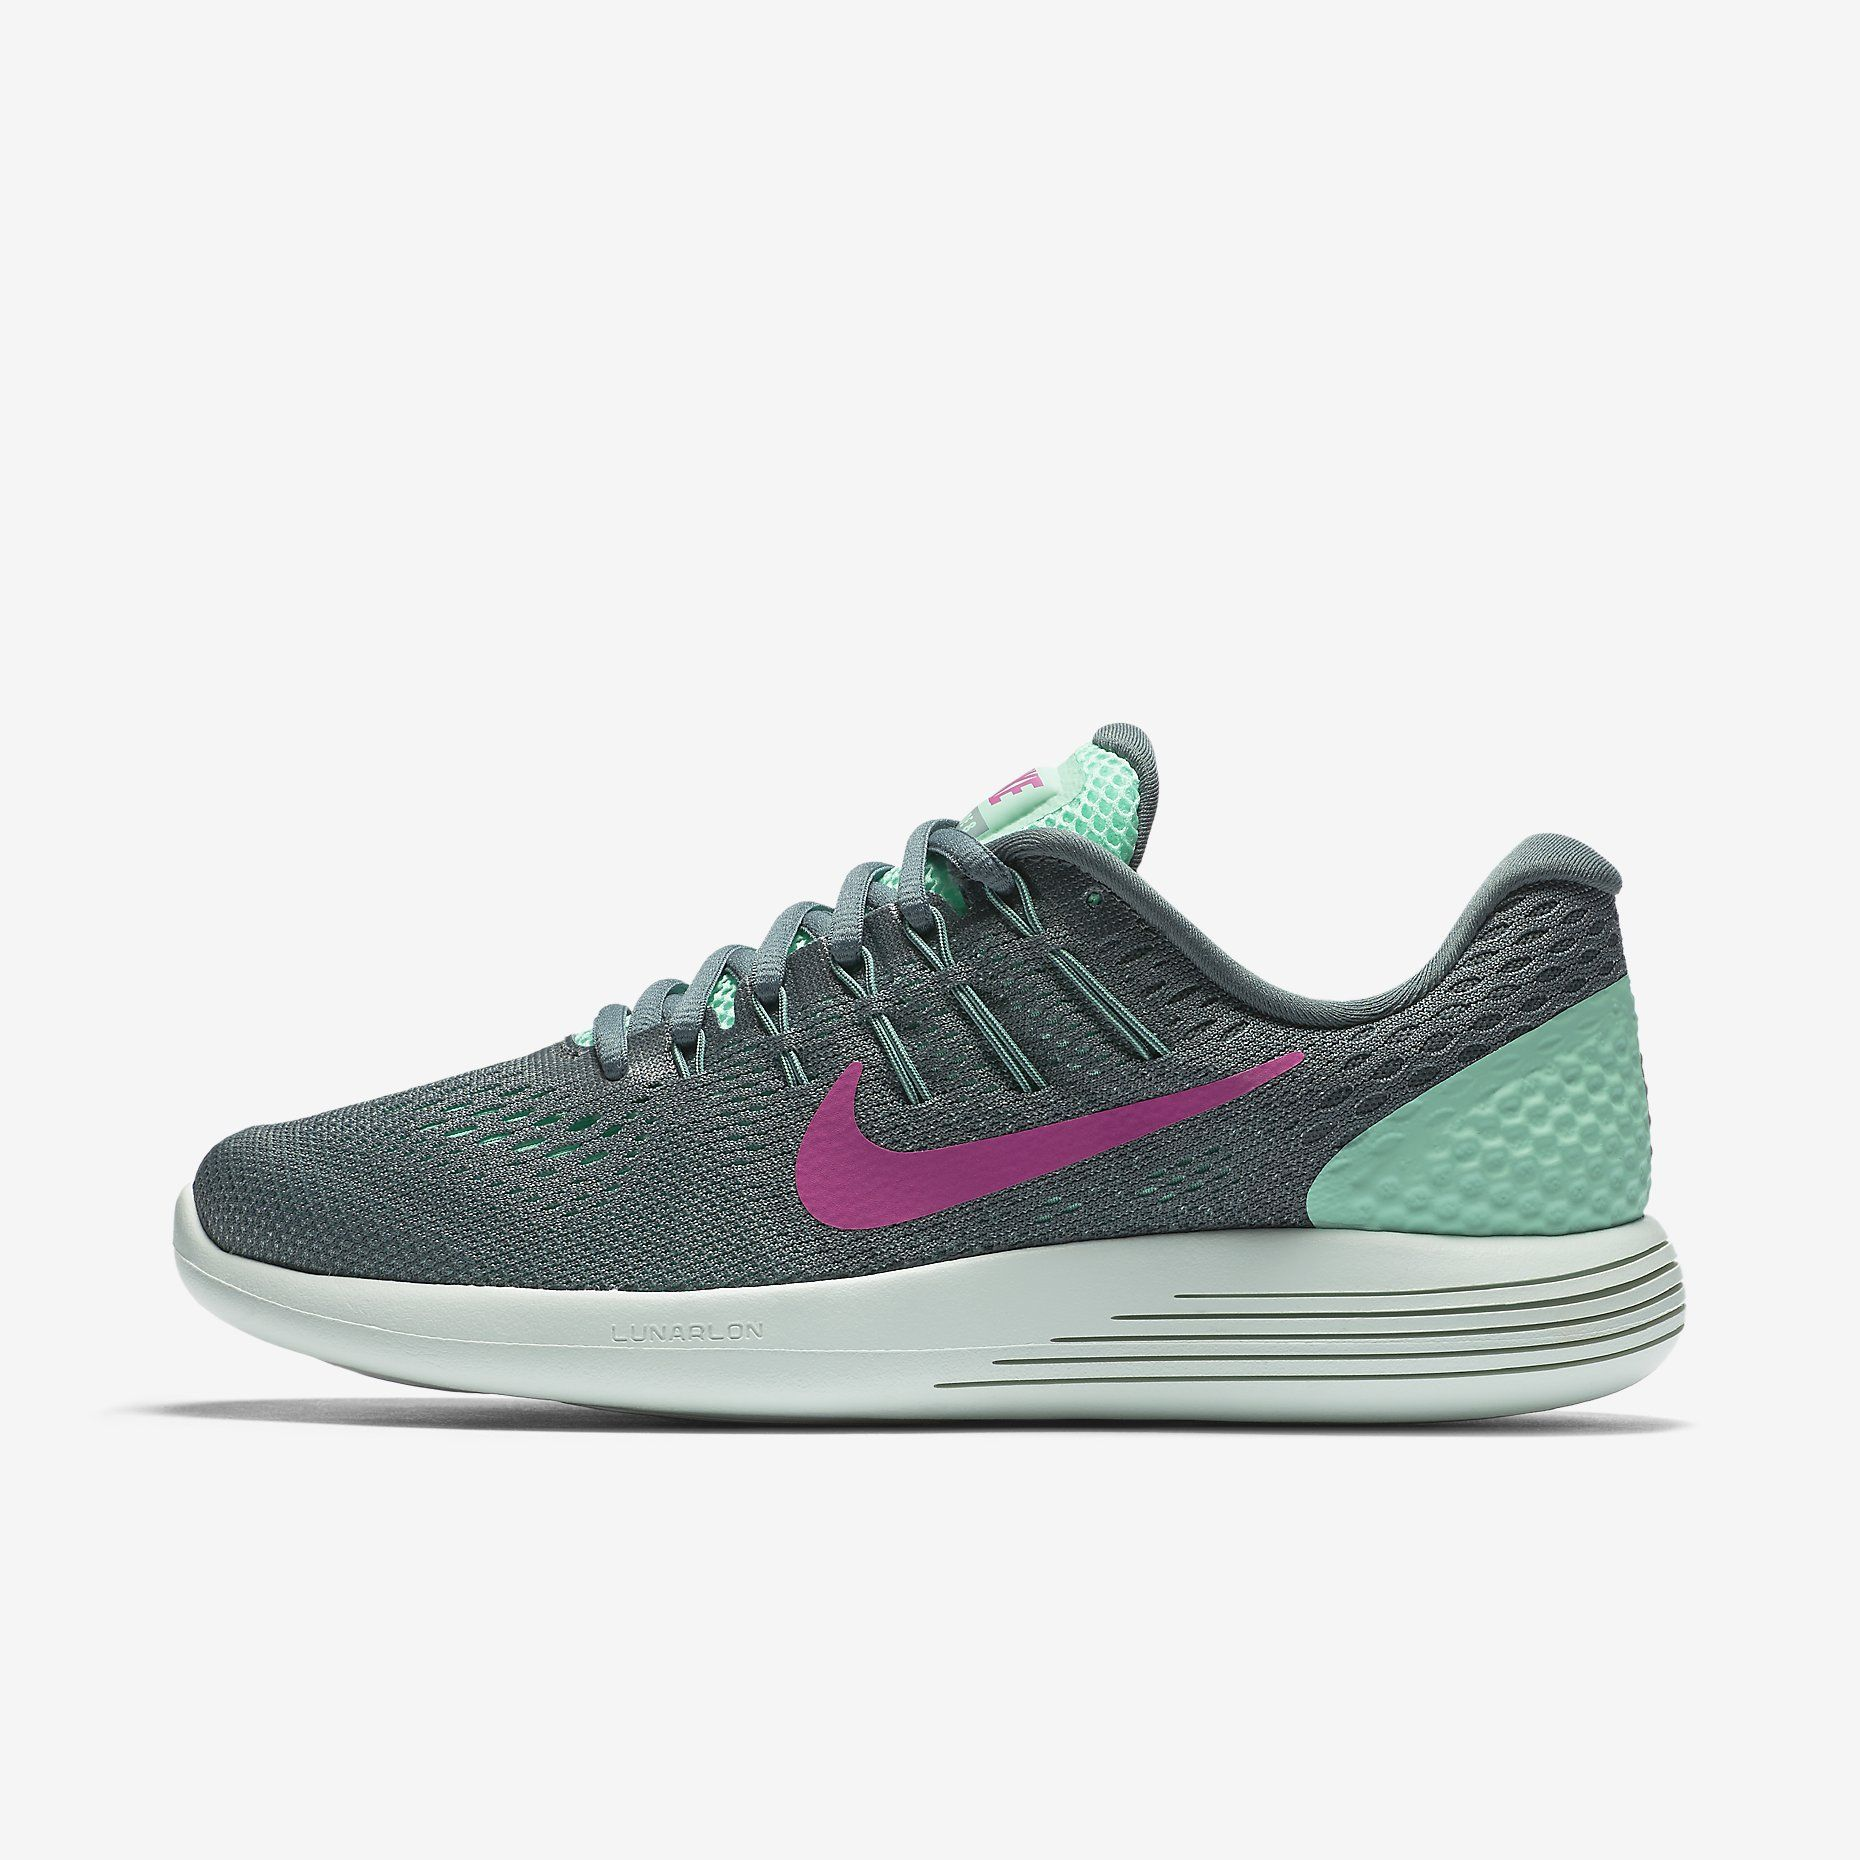 4031664b2411f4 Shop Nike for shoes